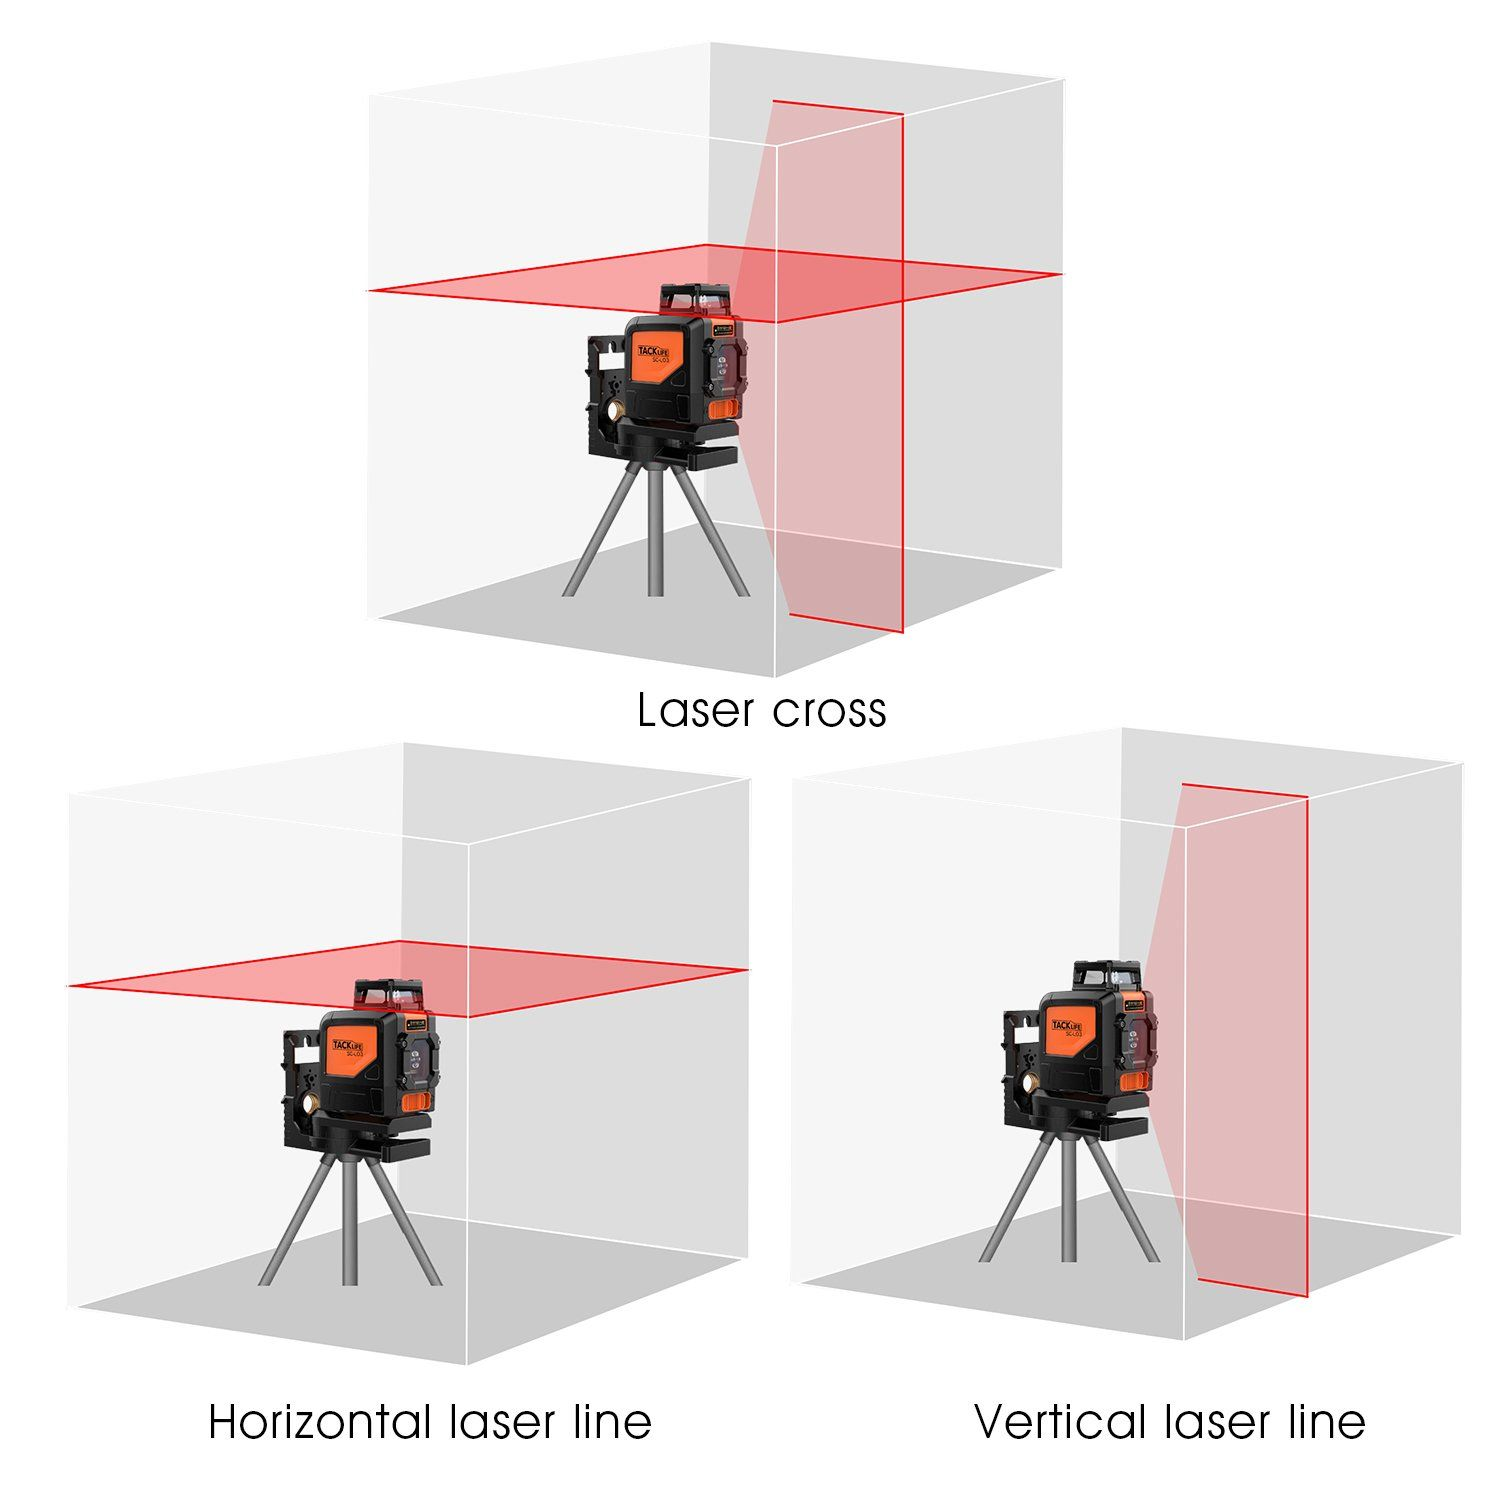 Laser Level Tacklife Sc L03 98ft Crossline Self Leveling 360 Degree Horizontal Line Magnetic Pivoting Base Carryin Laser Levels Rotary 10 Things